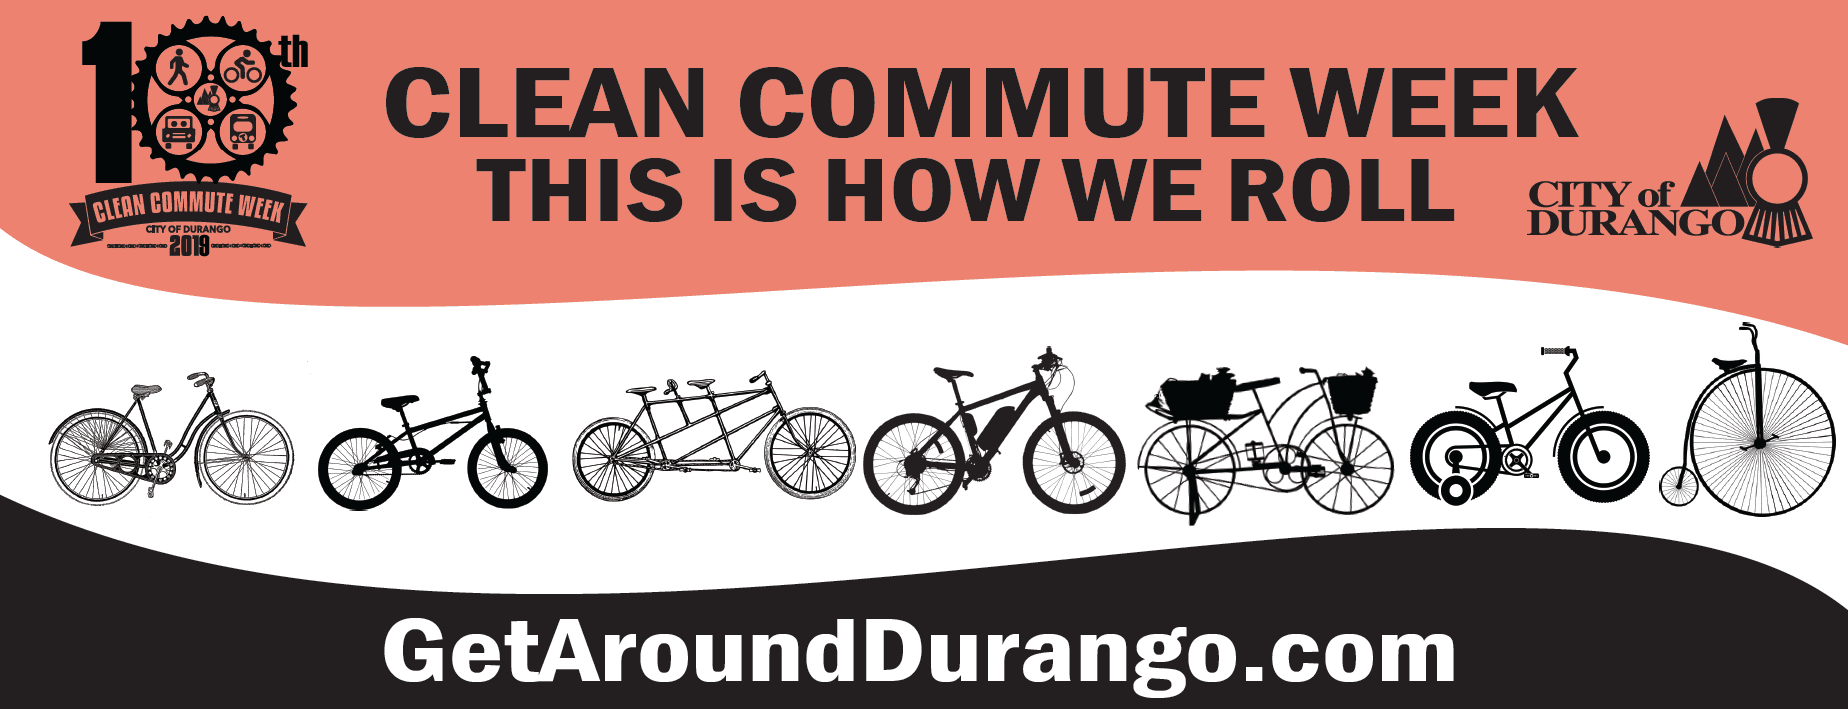 Clean Commute Banner 2019